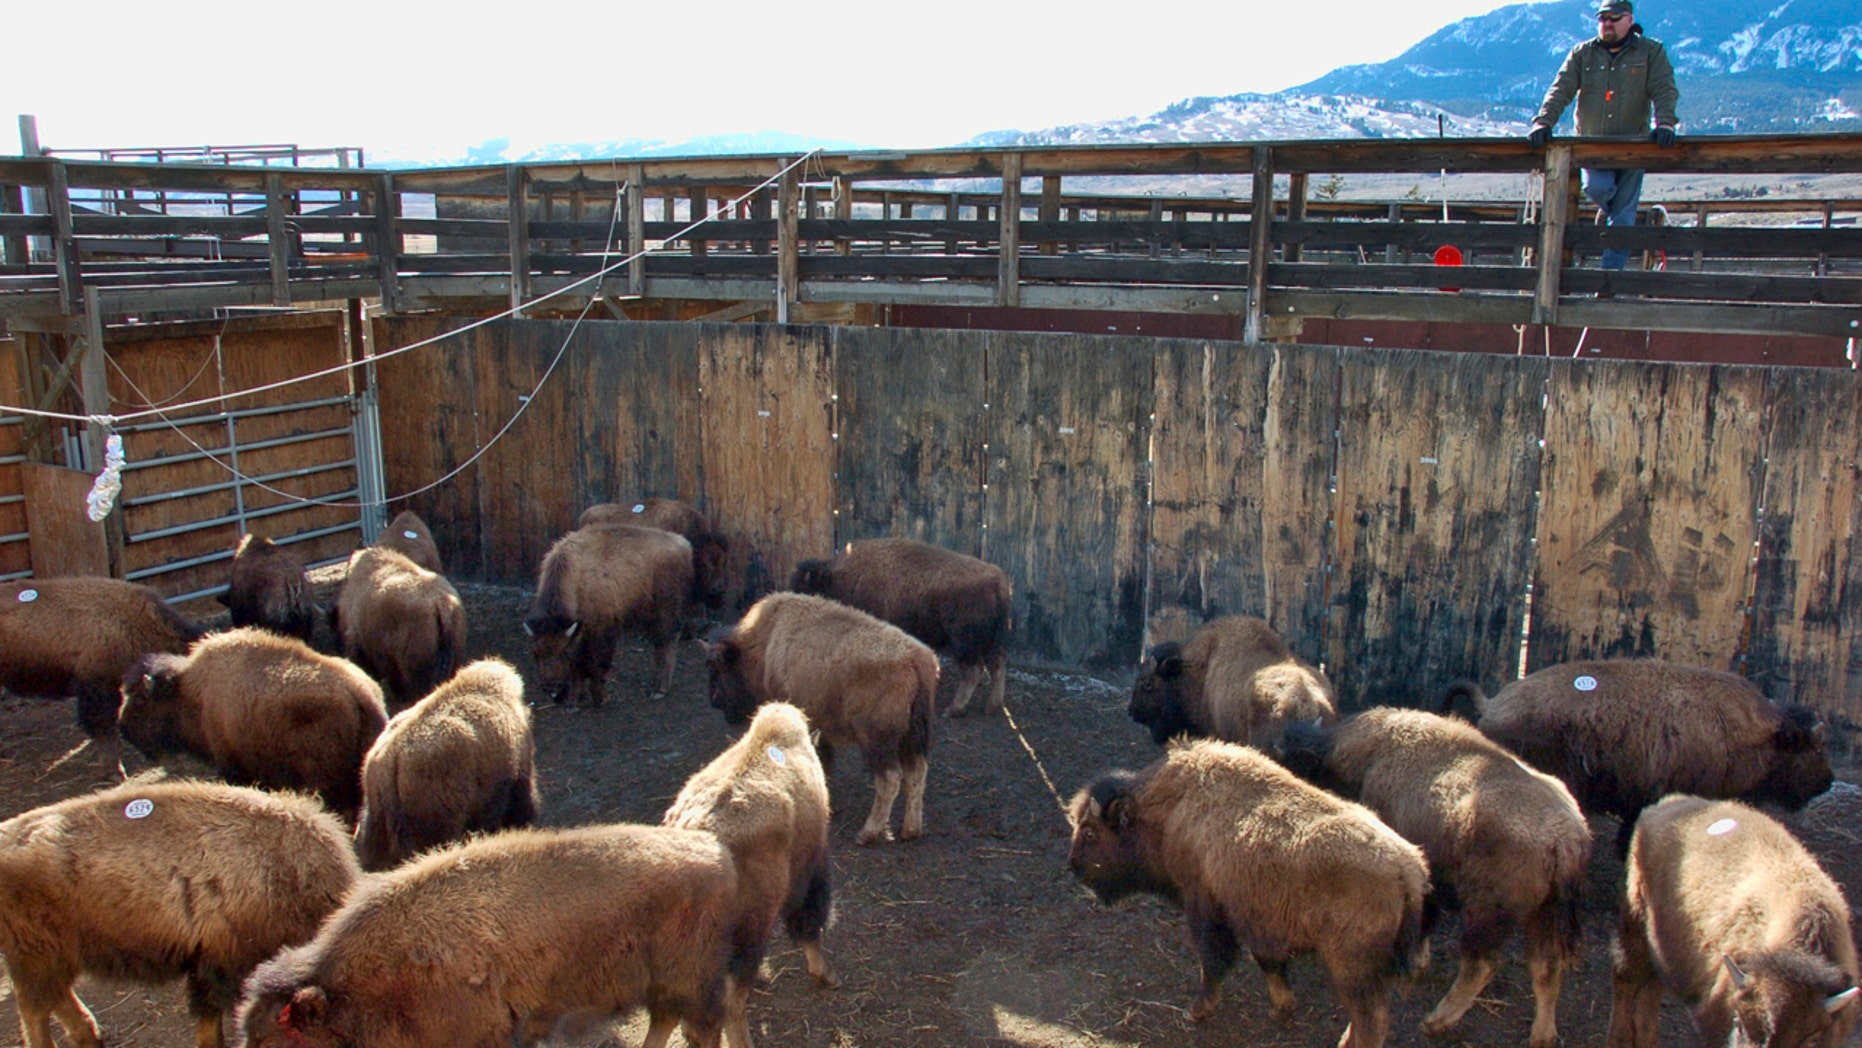 This March 9, 2016 file photo shows bison captured from Yellowstone National Park being held in a government research facility near Corwin Springs, Mont.